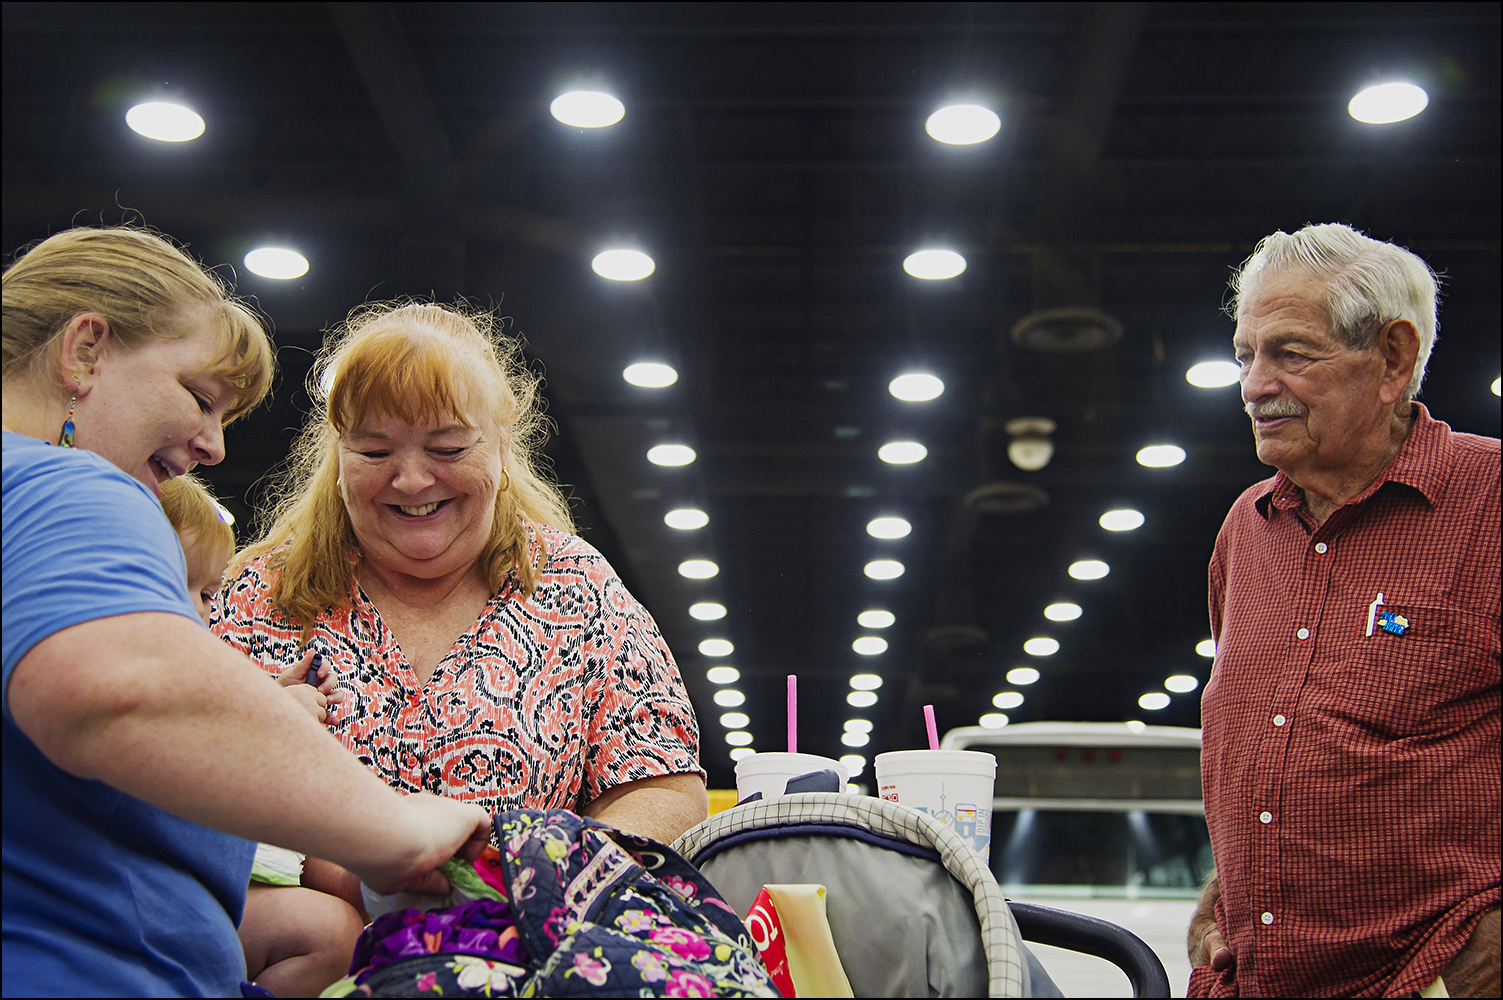 Louisville resident Amanda Mayhew, left, and her mother Teri Eisenmenger, center, finish changing Mayhew's daughter, Caramia's diaper during the Kentucky State Fair in Louisville, KY as her grandfather, Berlin Cook watches on Thursday, August 21, 2014. Photos by Brian Powers